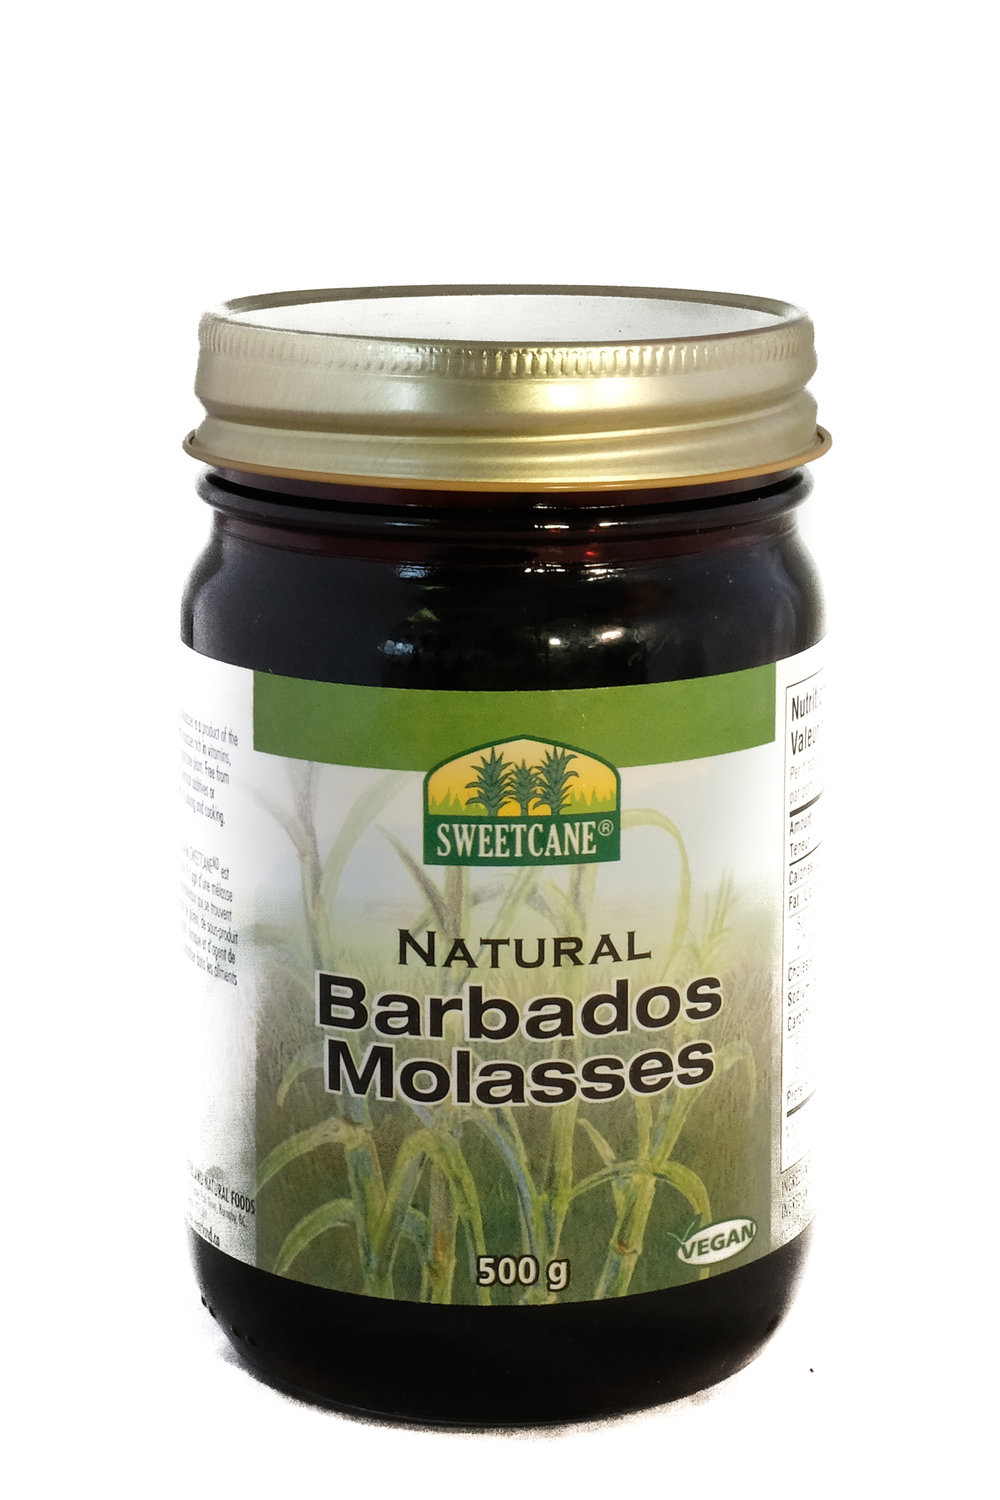 Natural Barbados Molasses